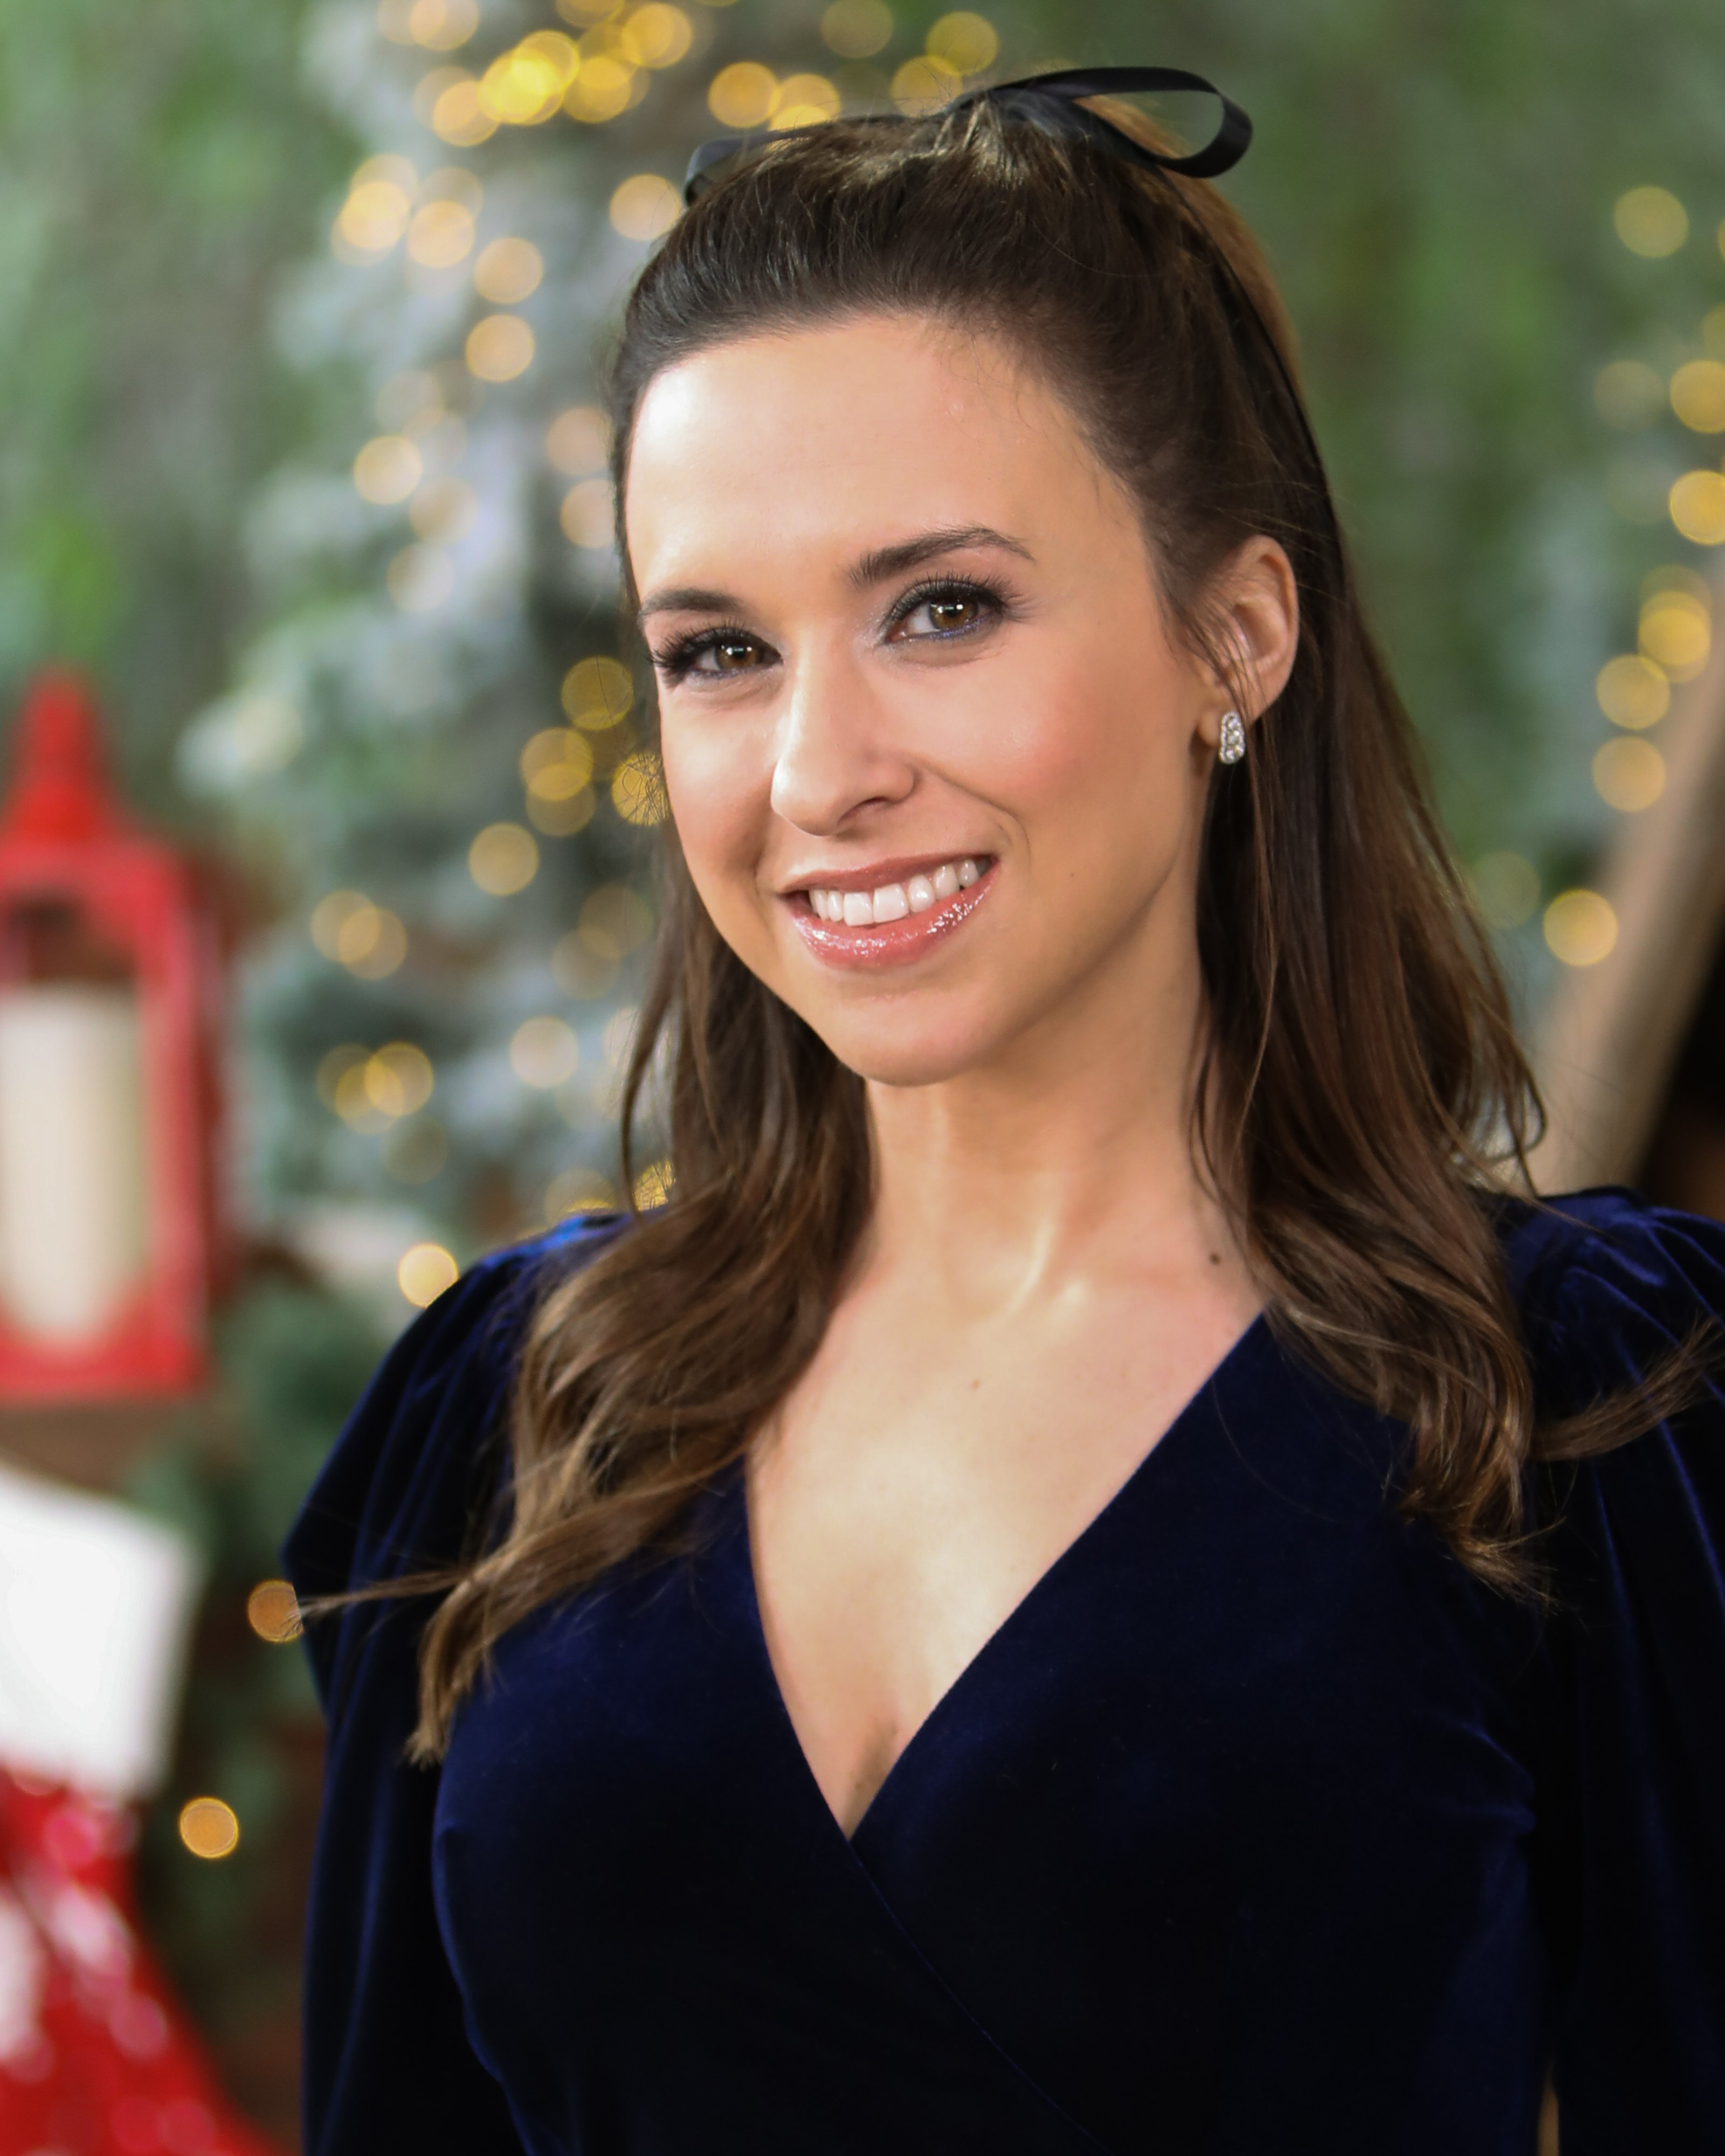 Lacey Chabert at Universal Studios Hollywood on December 14, 2019 | Photo: Getty Images